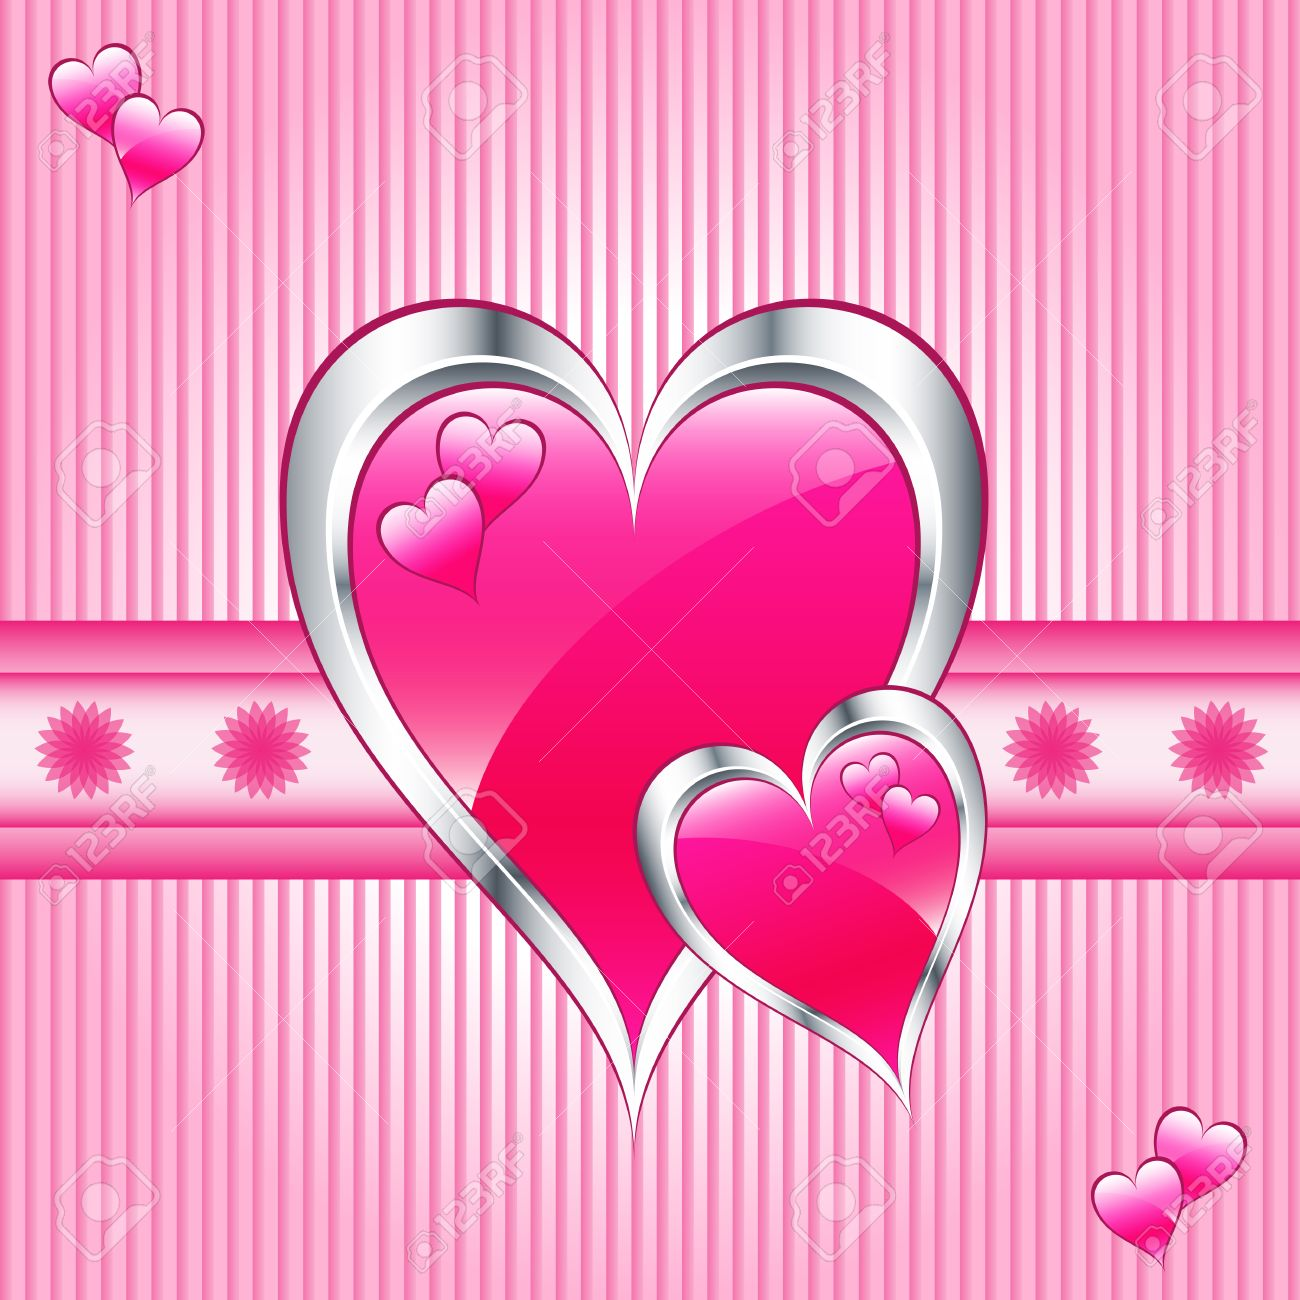 Valentines or mothers day pink hearts symbolizing love. Striped pink background with flowers. Stock Vector - 6515290